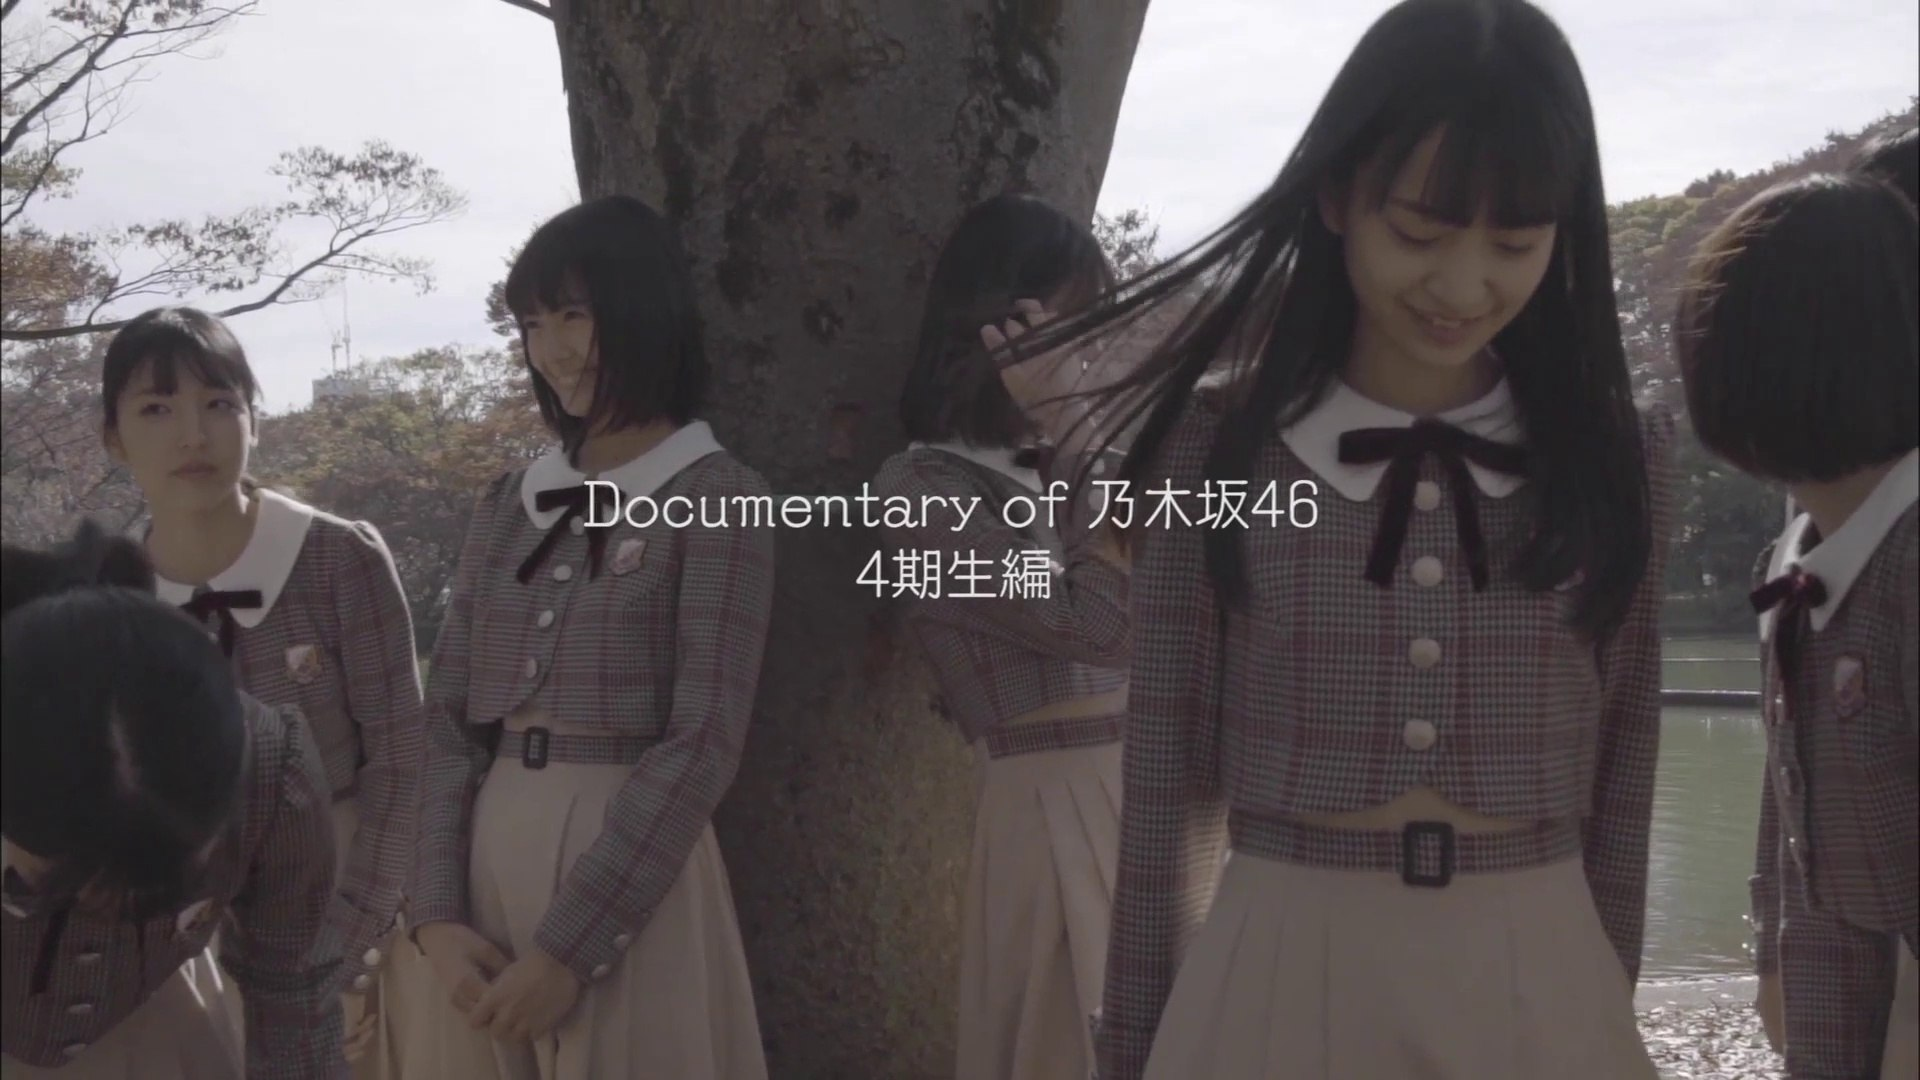 Documentary Of 乃木坂46 4期生編 動画 Dailymotion